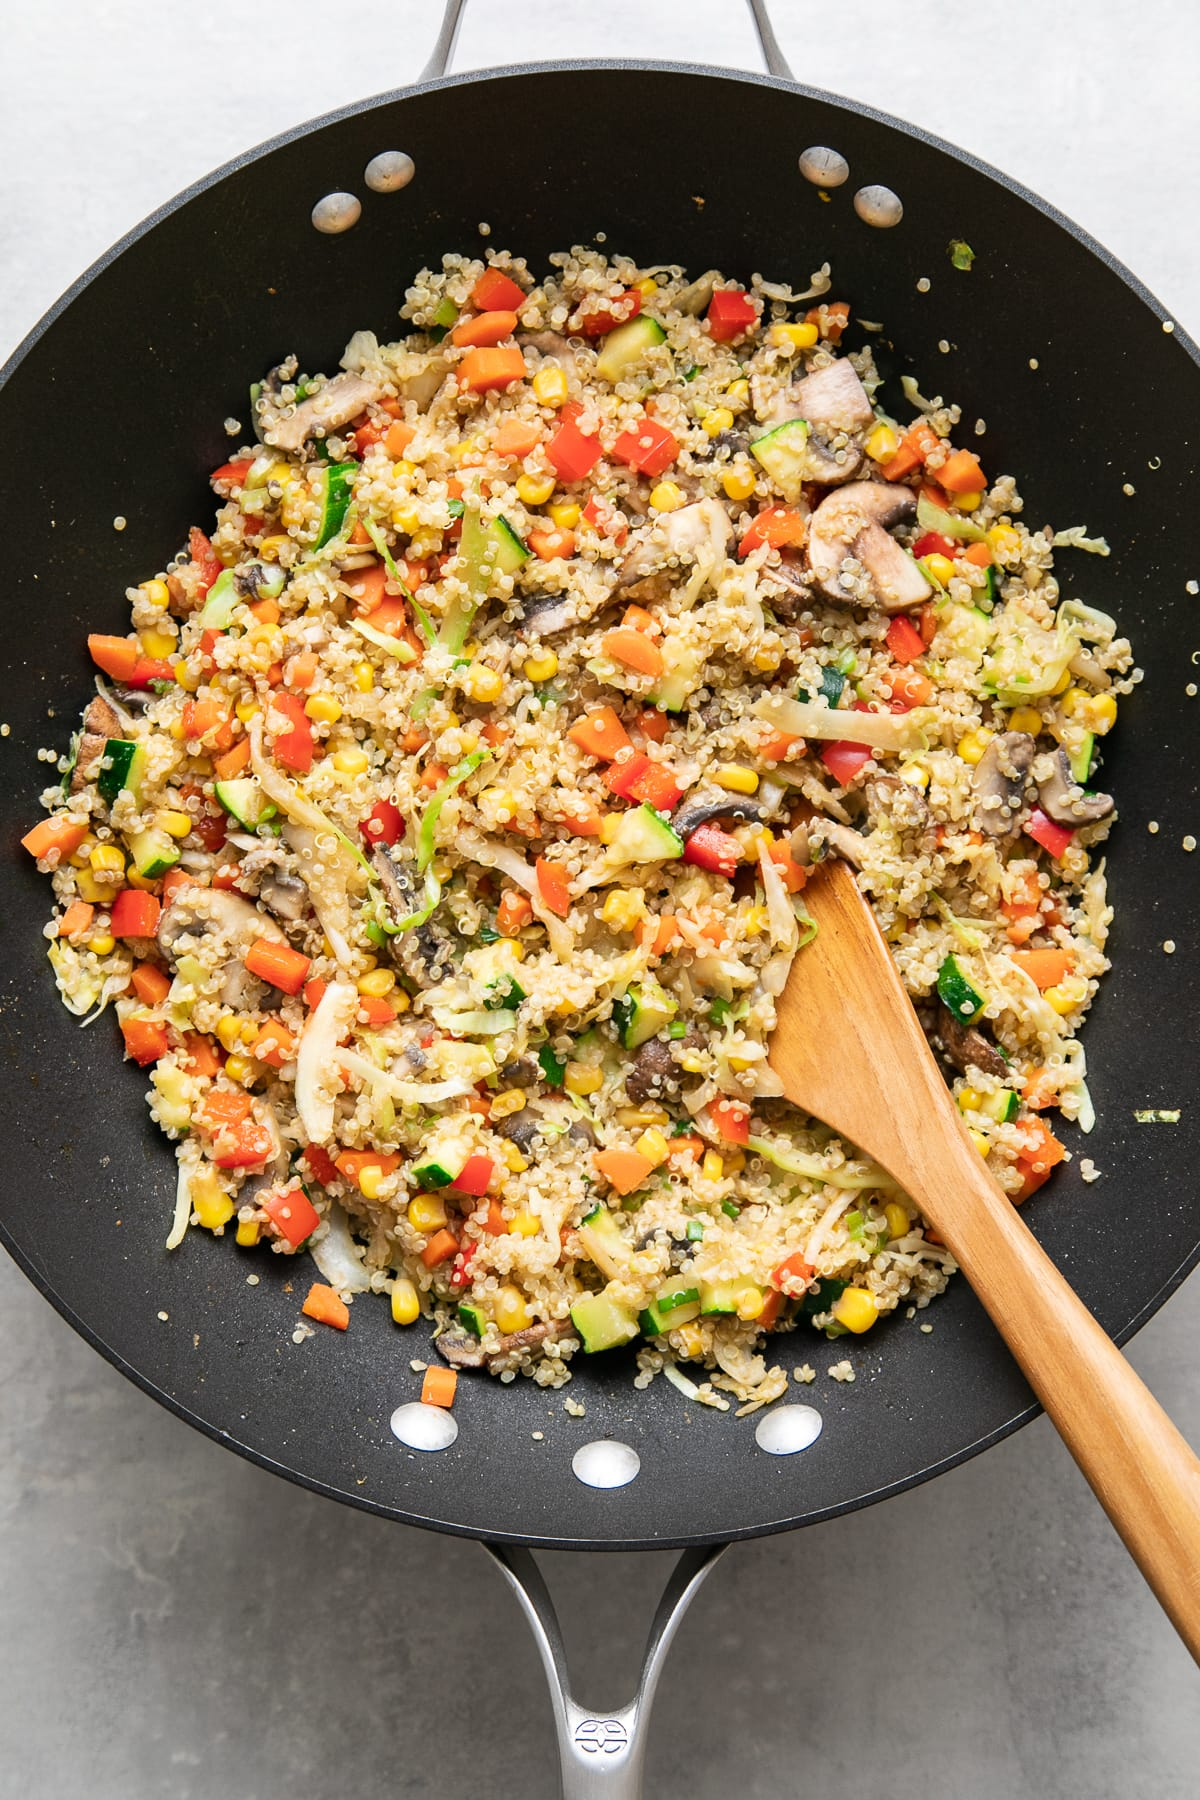 top down view of freshly made quinoa fried rice in a wok with wooden spoon.